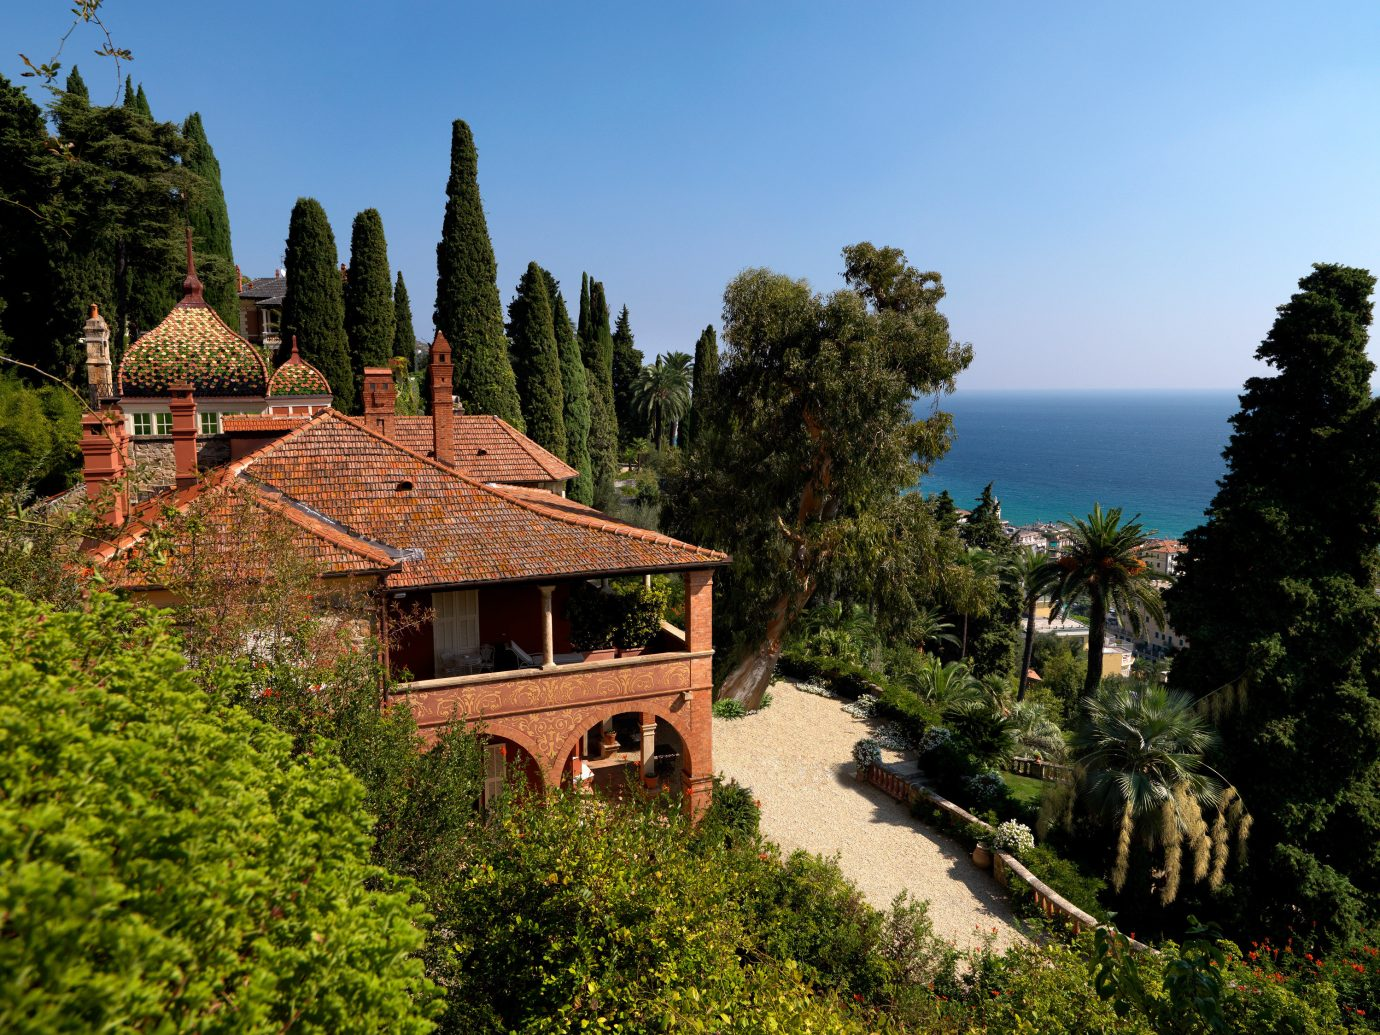 Italy Trip Ideas sky vegetation property tree plant estate house cottage mountain village real estate mountain home Villa Village terrain mount scenery roof landscape hill mansion tourism hacienda arecales